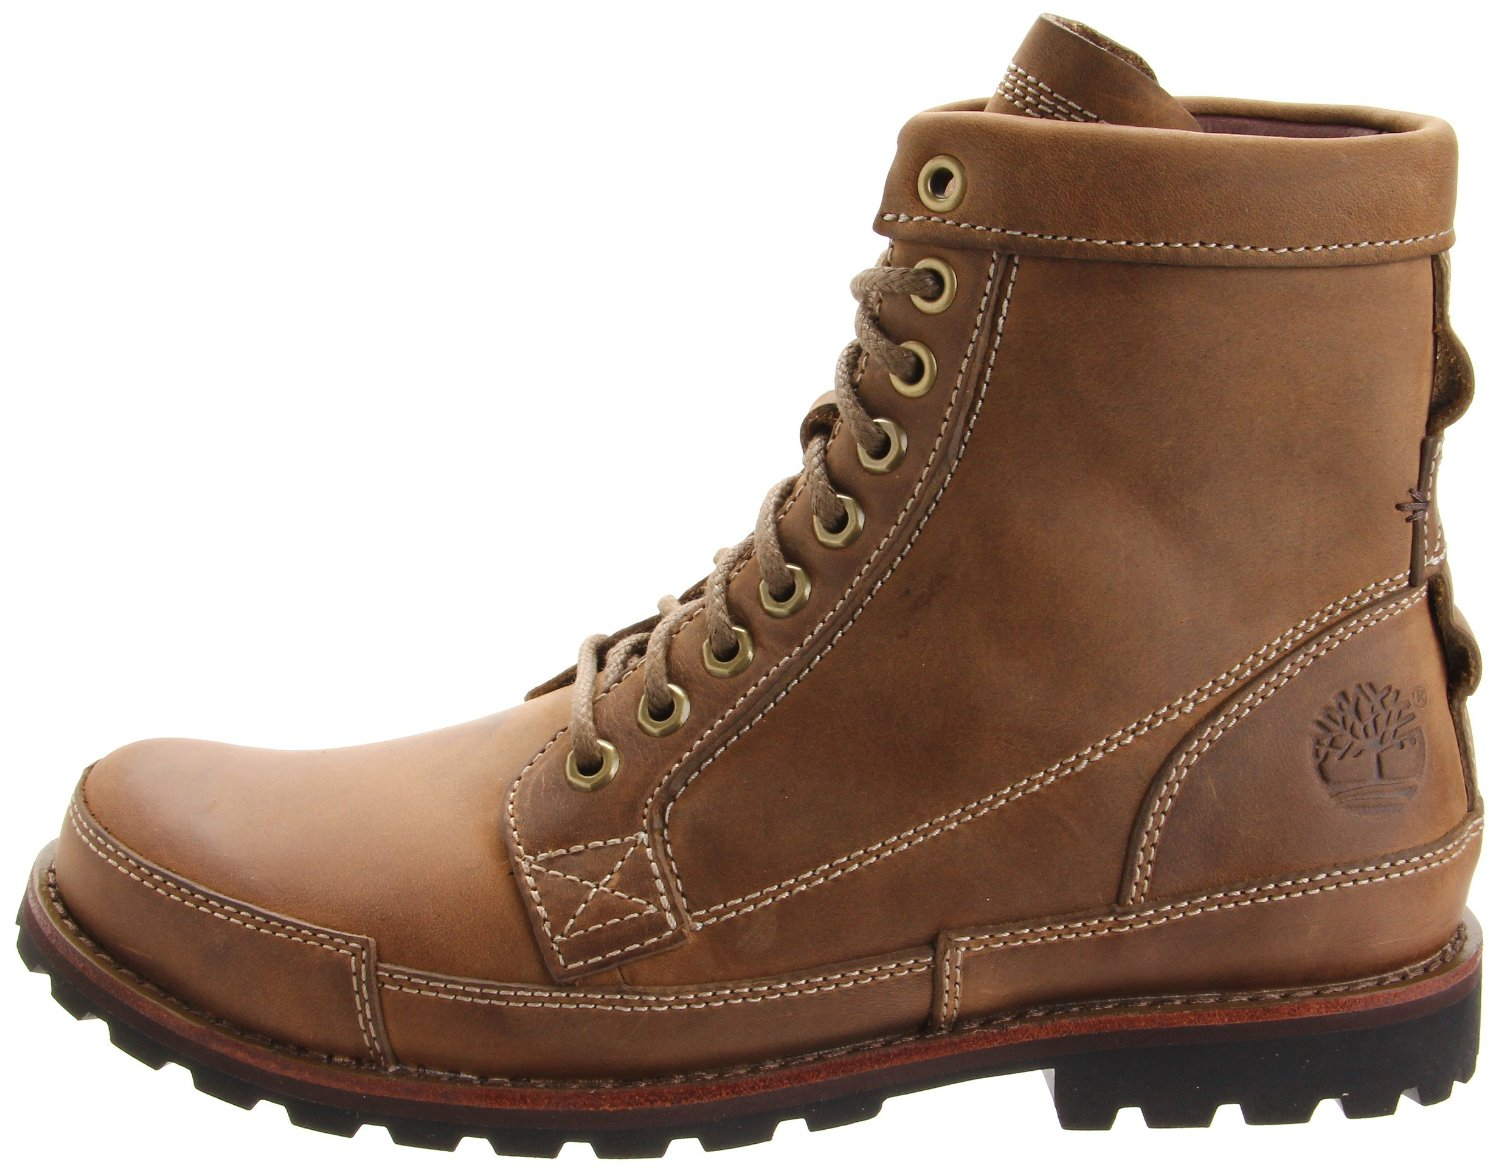 Timberland Boots For Men 2012 Hiking, Journey...